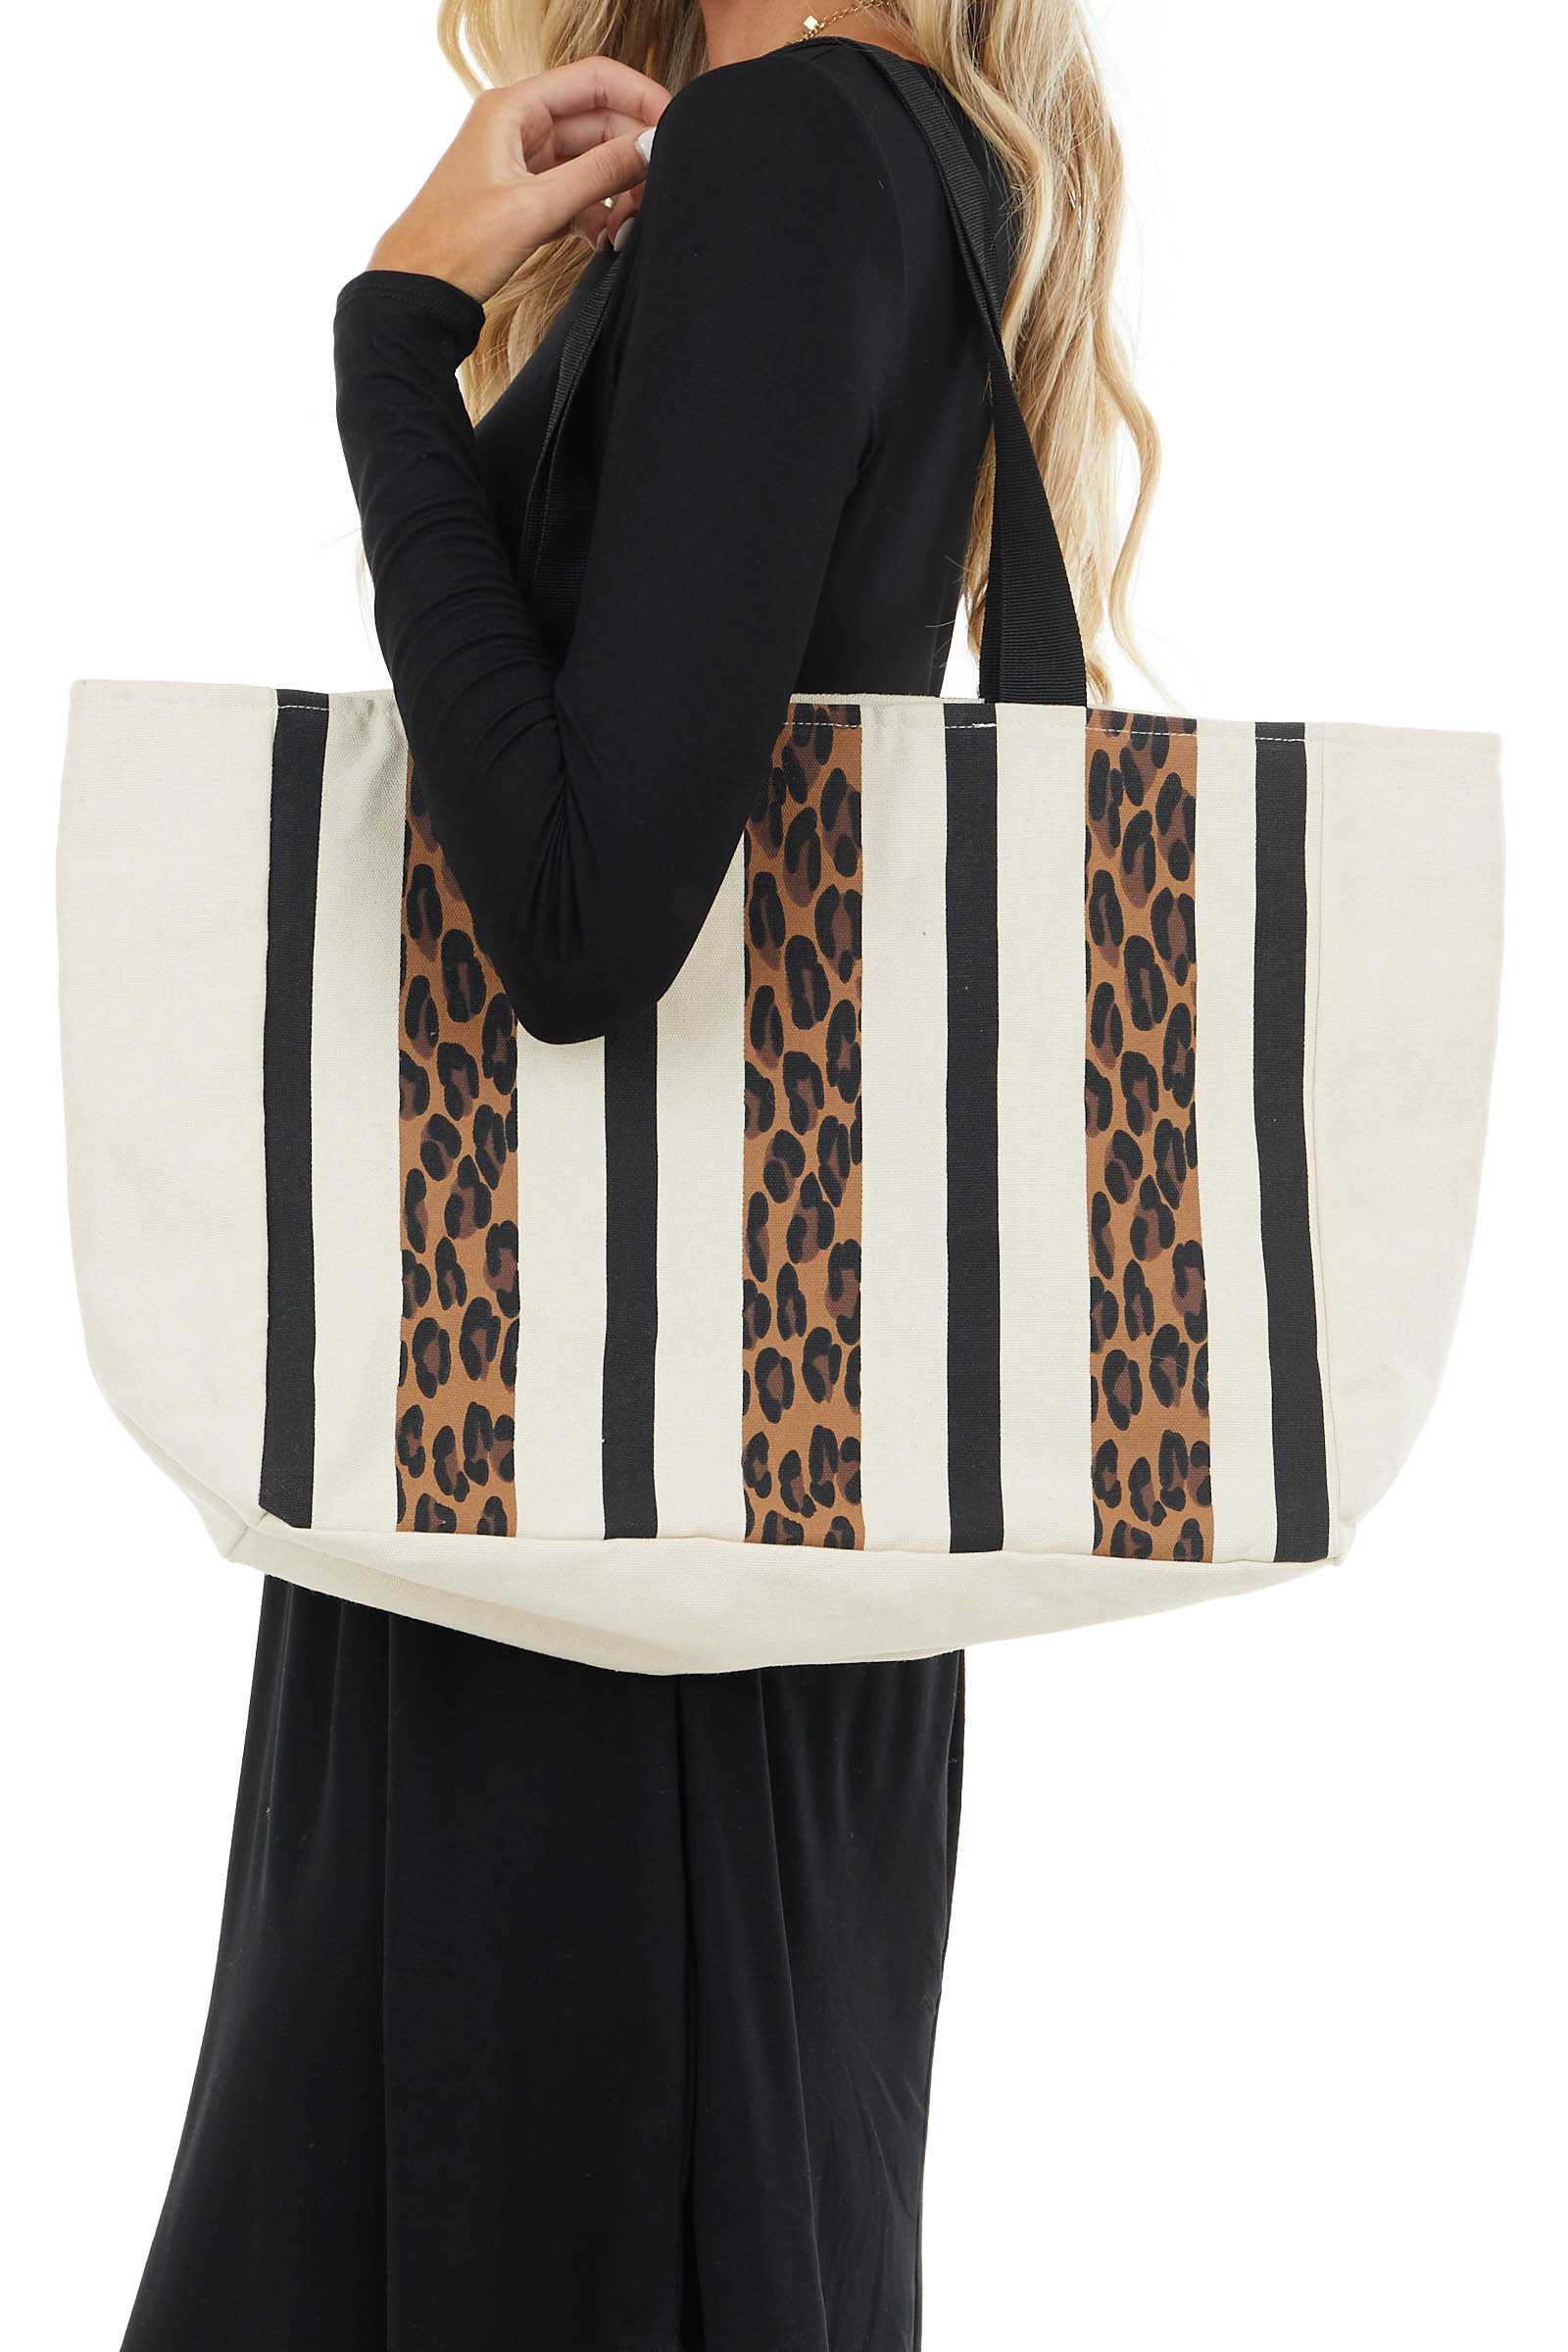 Ivory and Leopard Print Striped Large Tote Bag with Clasp